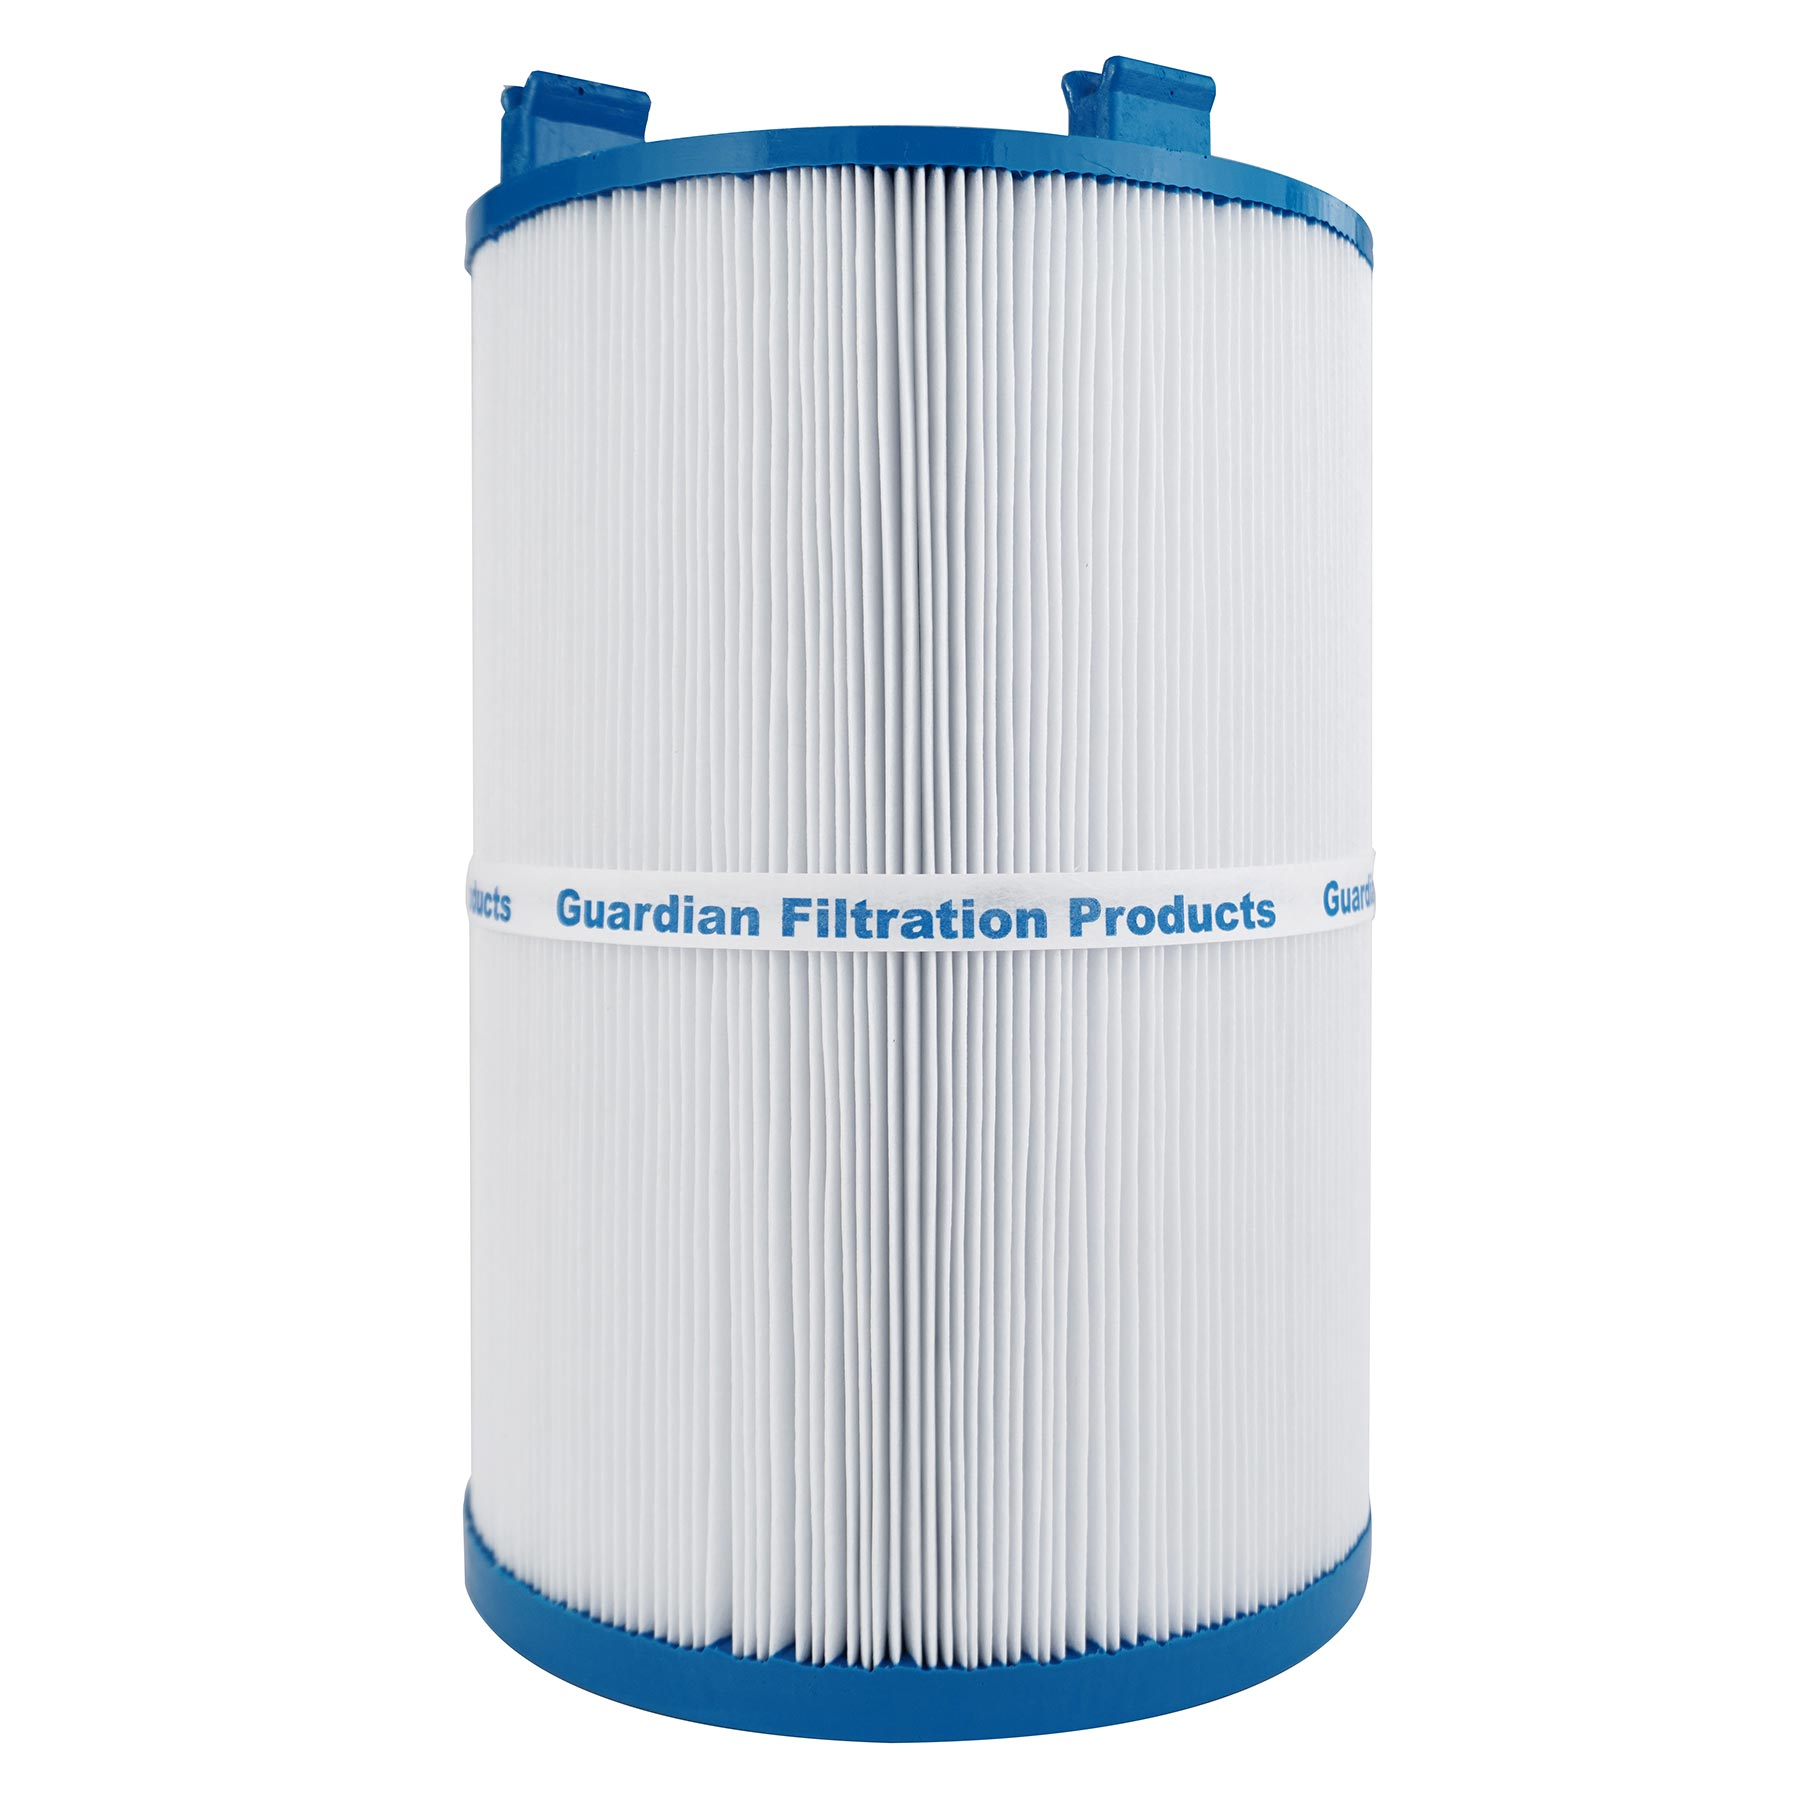 Replaces Unicel C-7367, Pleatco PDO75-2000 • Pool & Spa Filter Cartridge-Filter Cartridge-FilterDeal.com